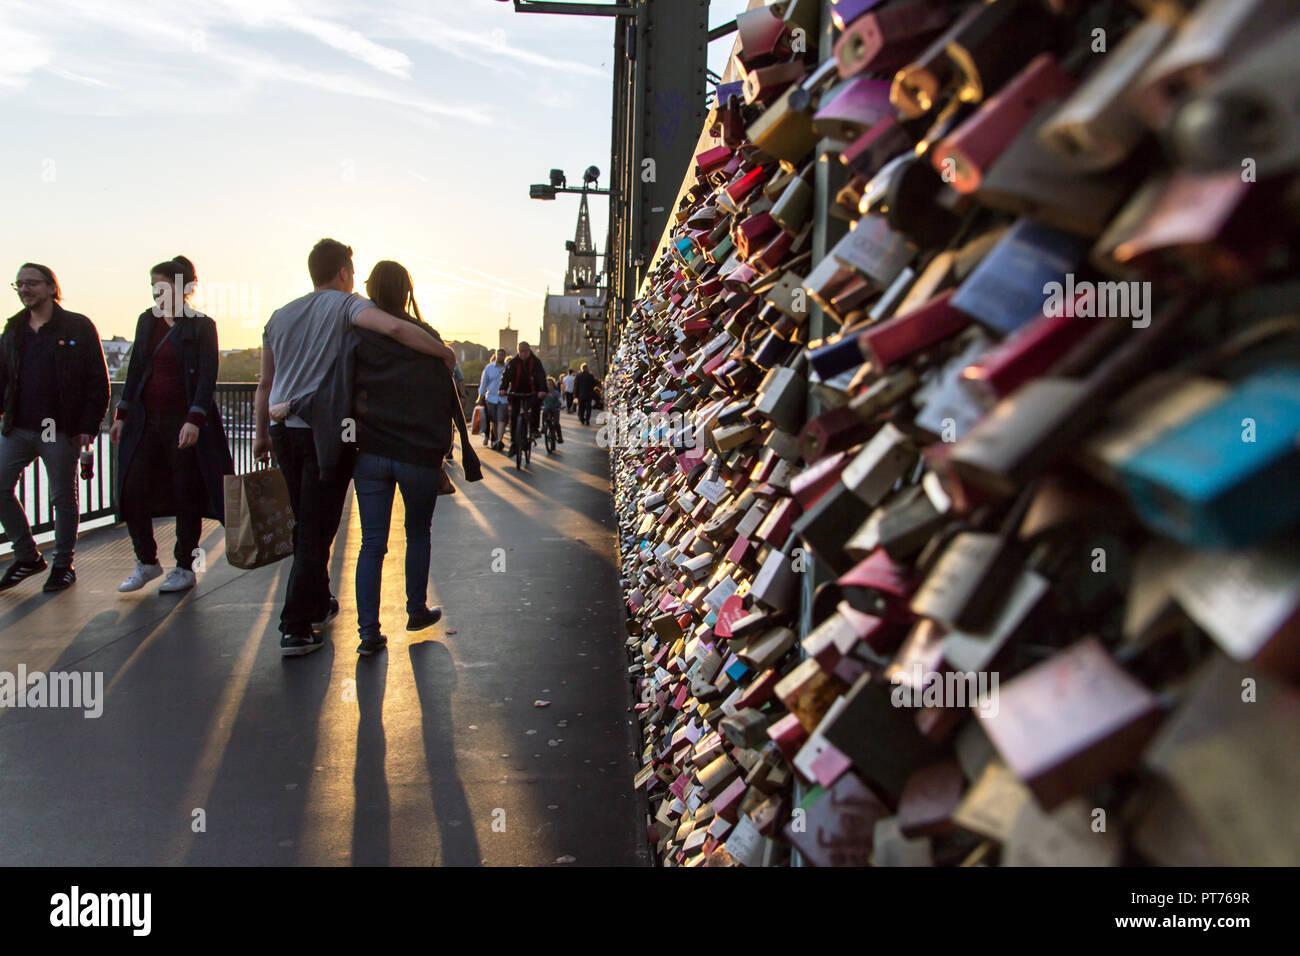 COLOGNE, GERMANY- OCTOBER 06, 2018: Tourists on the Hohenzollern Bridge. as a sign of strong love or strong friendship, loving couples or groups of co Stock Photo